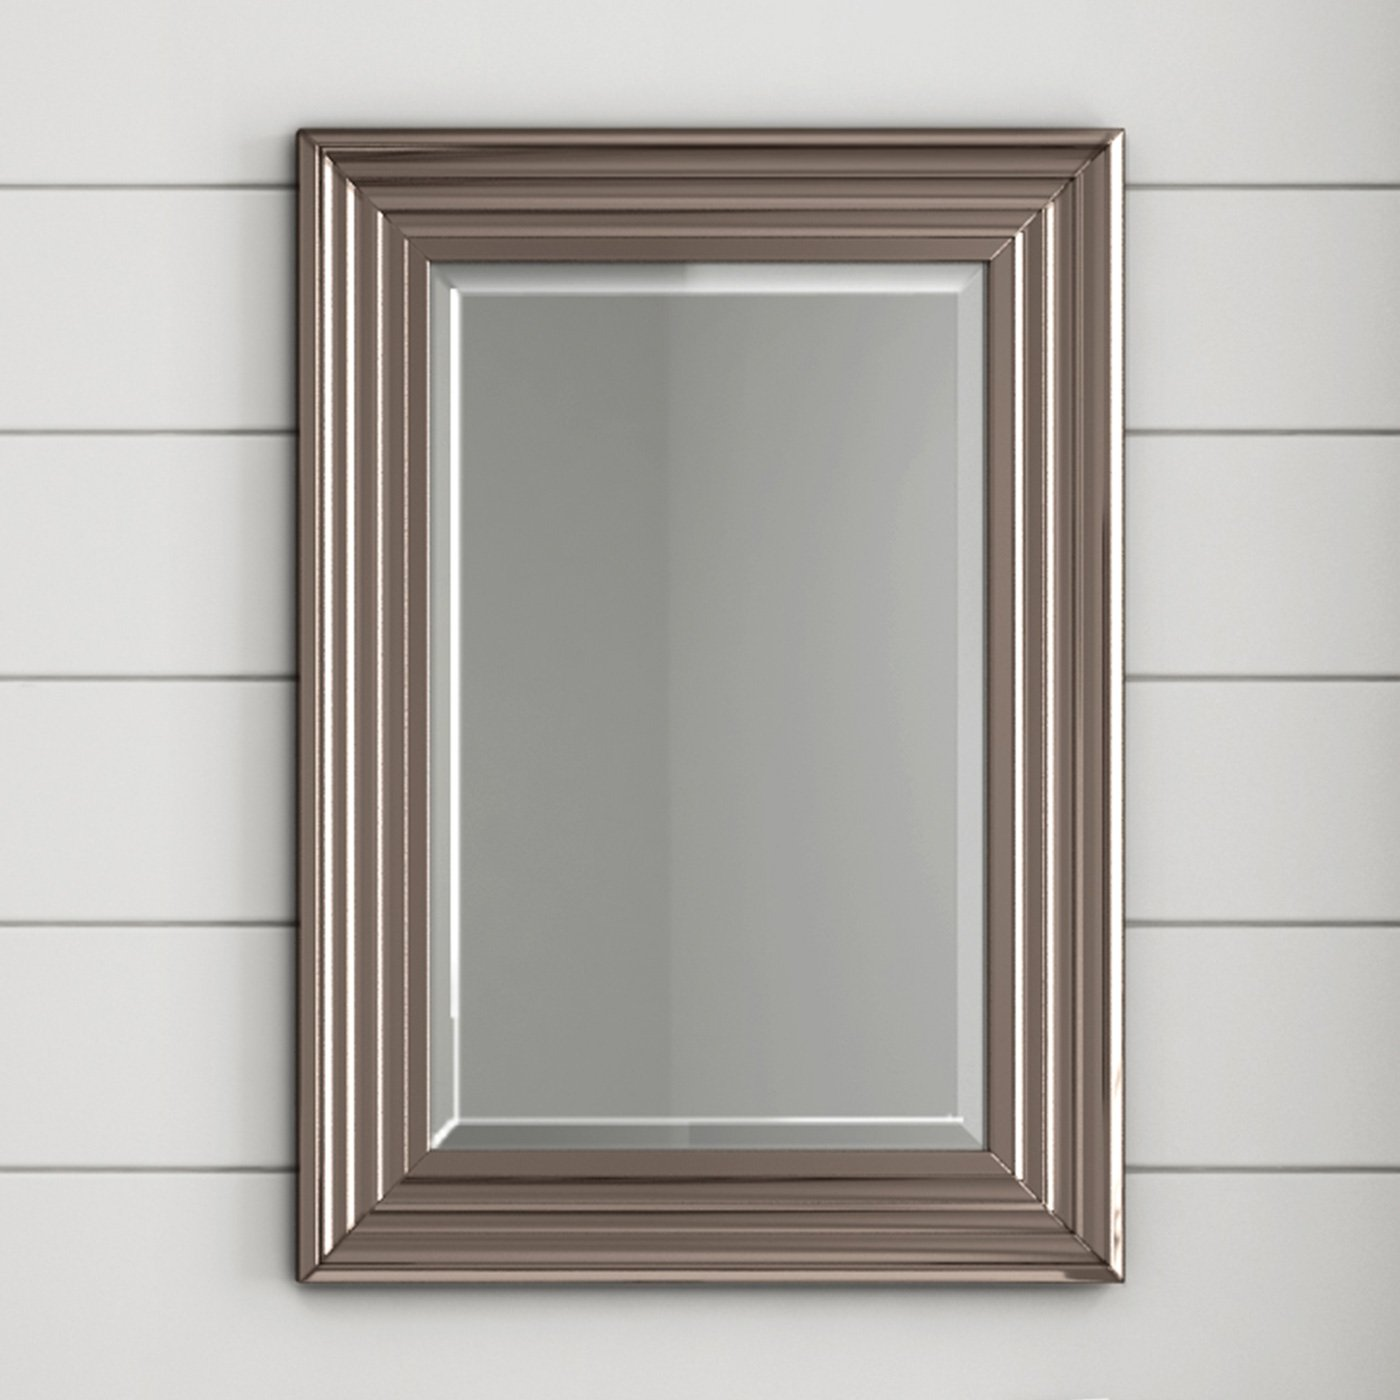 500 X 700 mm Traditional Wall Framed Bevelled Mirror Silver Bathroom Furniture ML8006 iBathUK